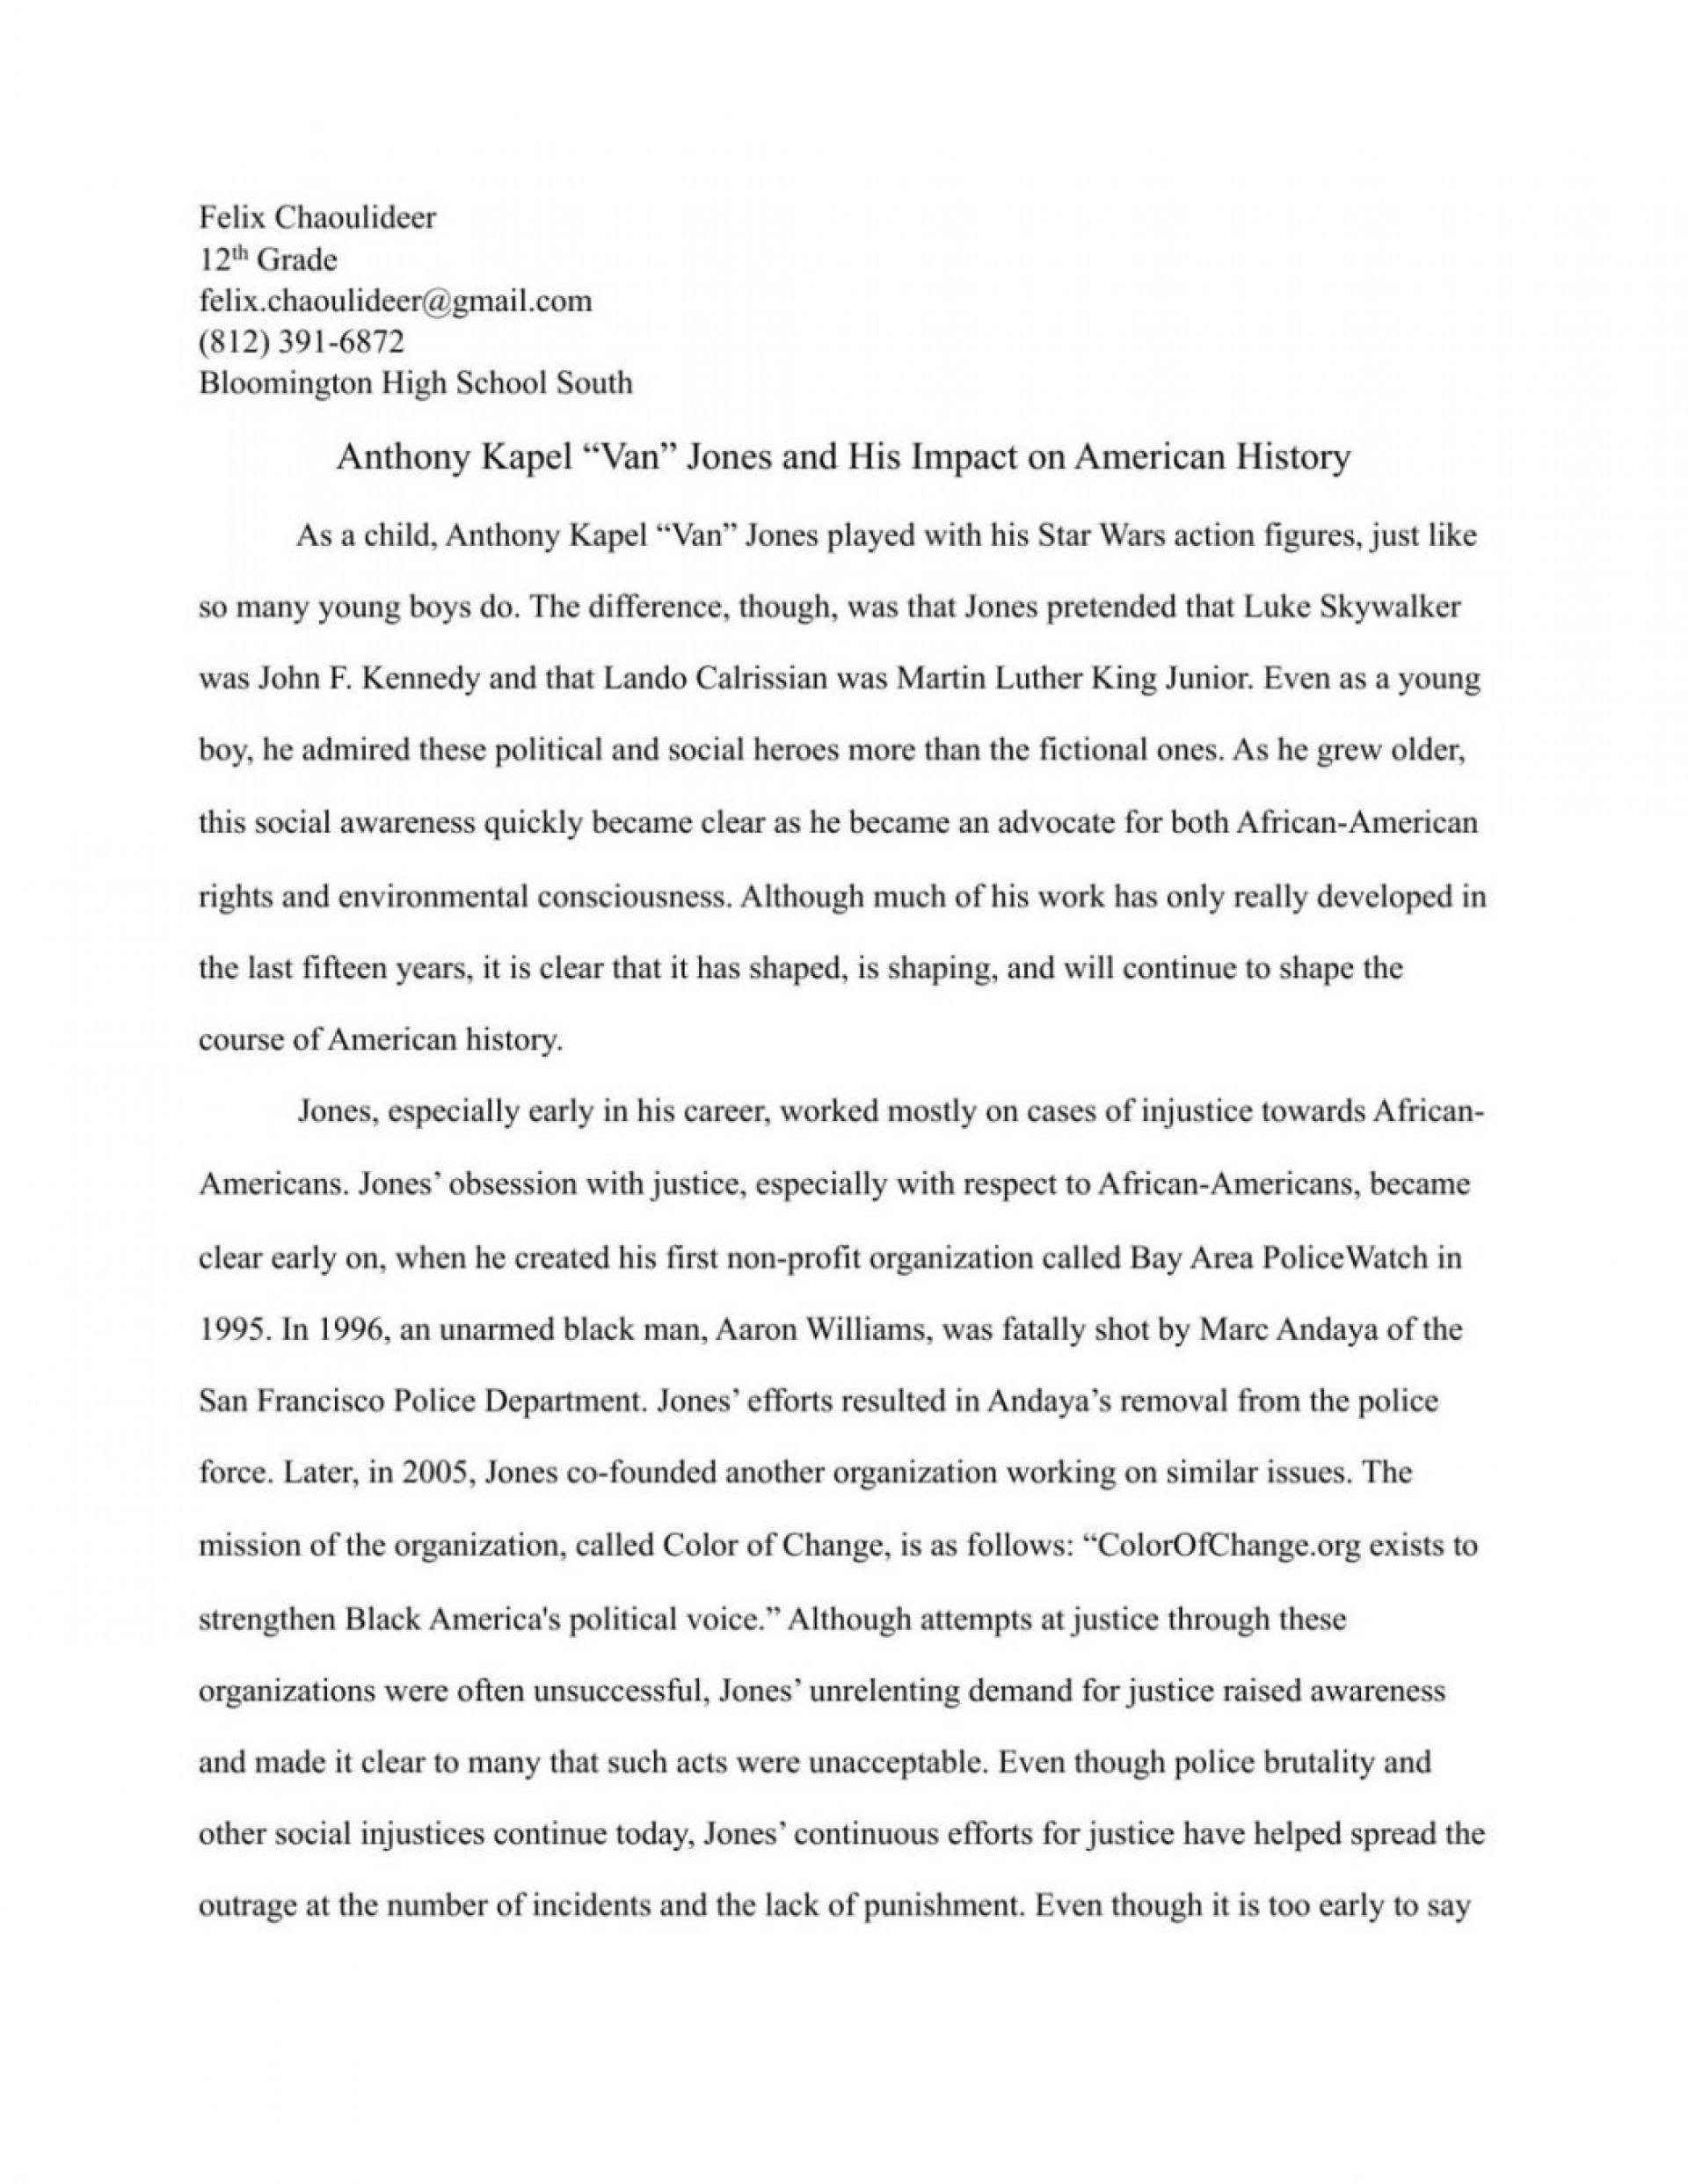 003 Persuasive Essay On Texting While Driving Thesis Statement For And Outline Free Speechs 1048x1356 Singular Essays Argumentative Scholarship 1920